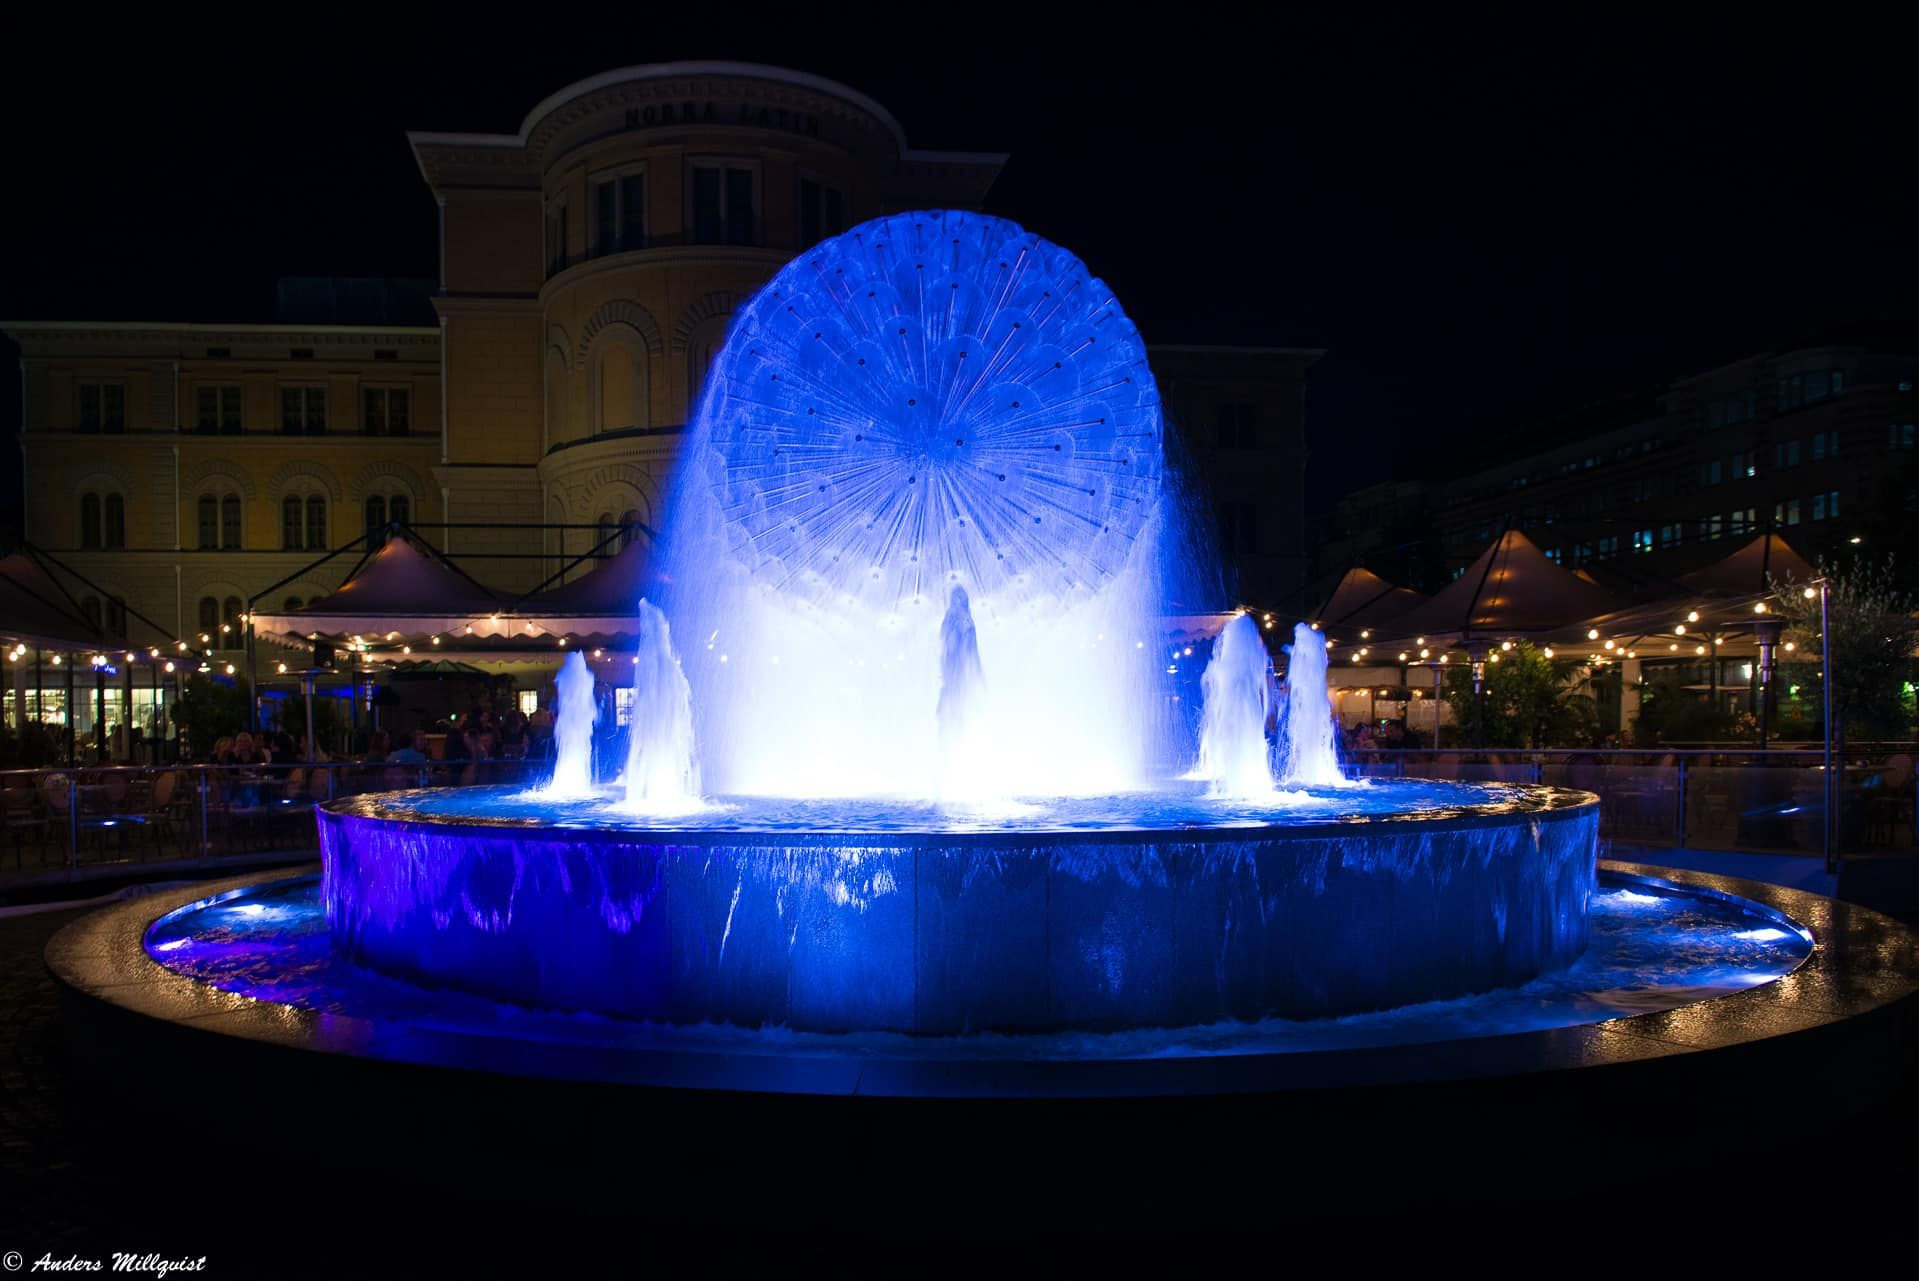 Blue fountain - https://millqvist.se/wp-content/uploads/D17_1649.jpg - https://millqvist.se/?p=548